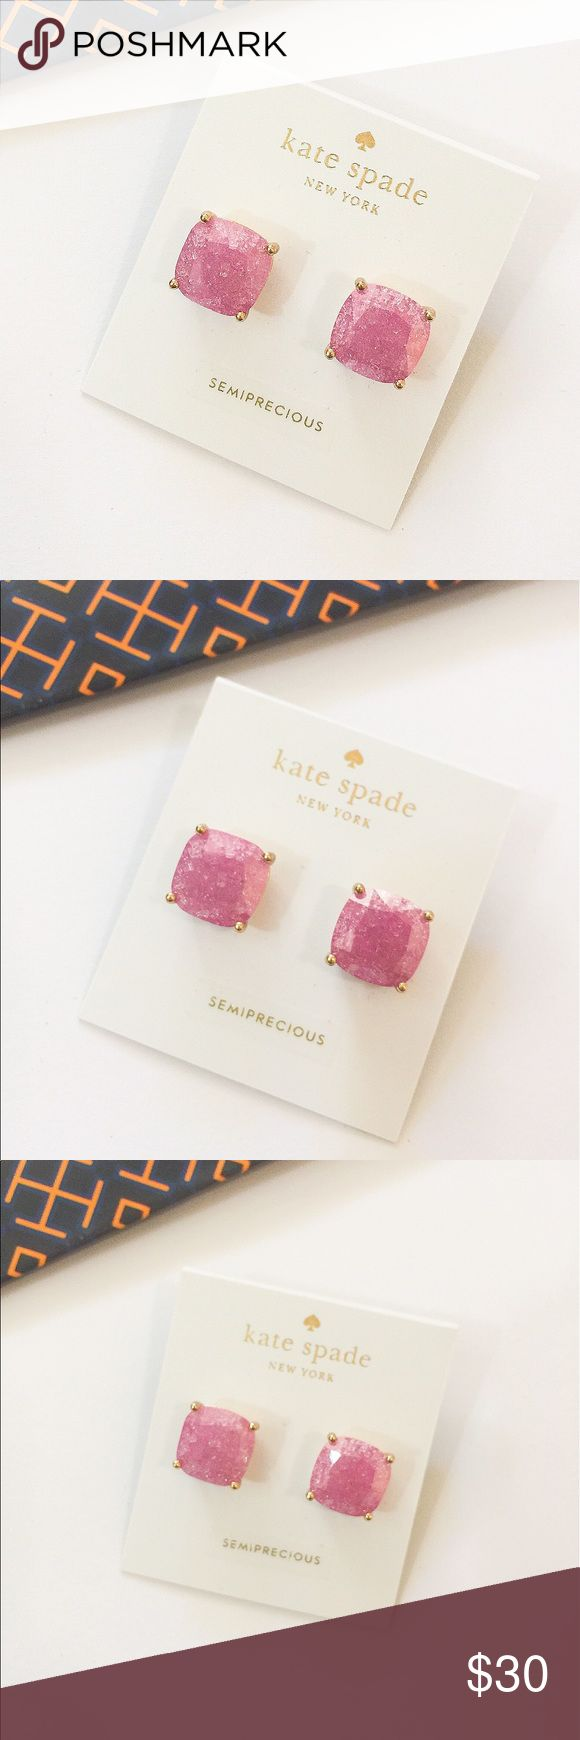 NWT Kate spade glitter square stud earrings Brand new with tag. Never worn. 100% authentic. Color: glitter light pink. ❌no trade ❌no lowballing offers!!! kate spade Jewelry Earrings